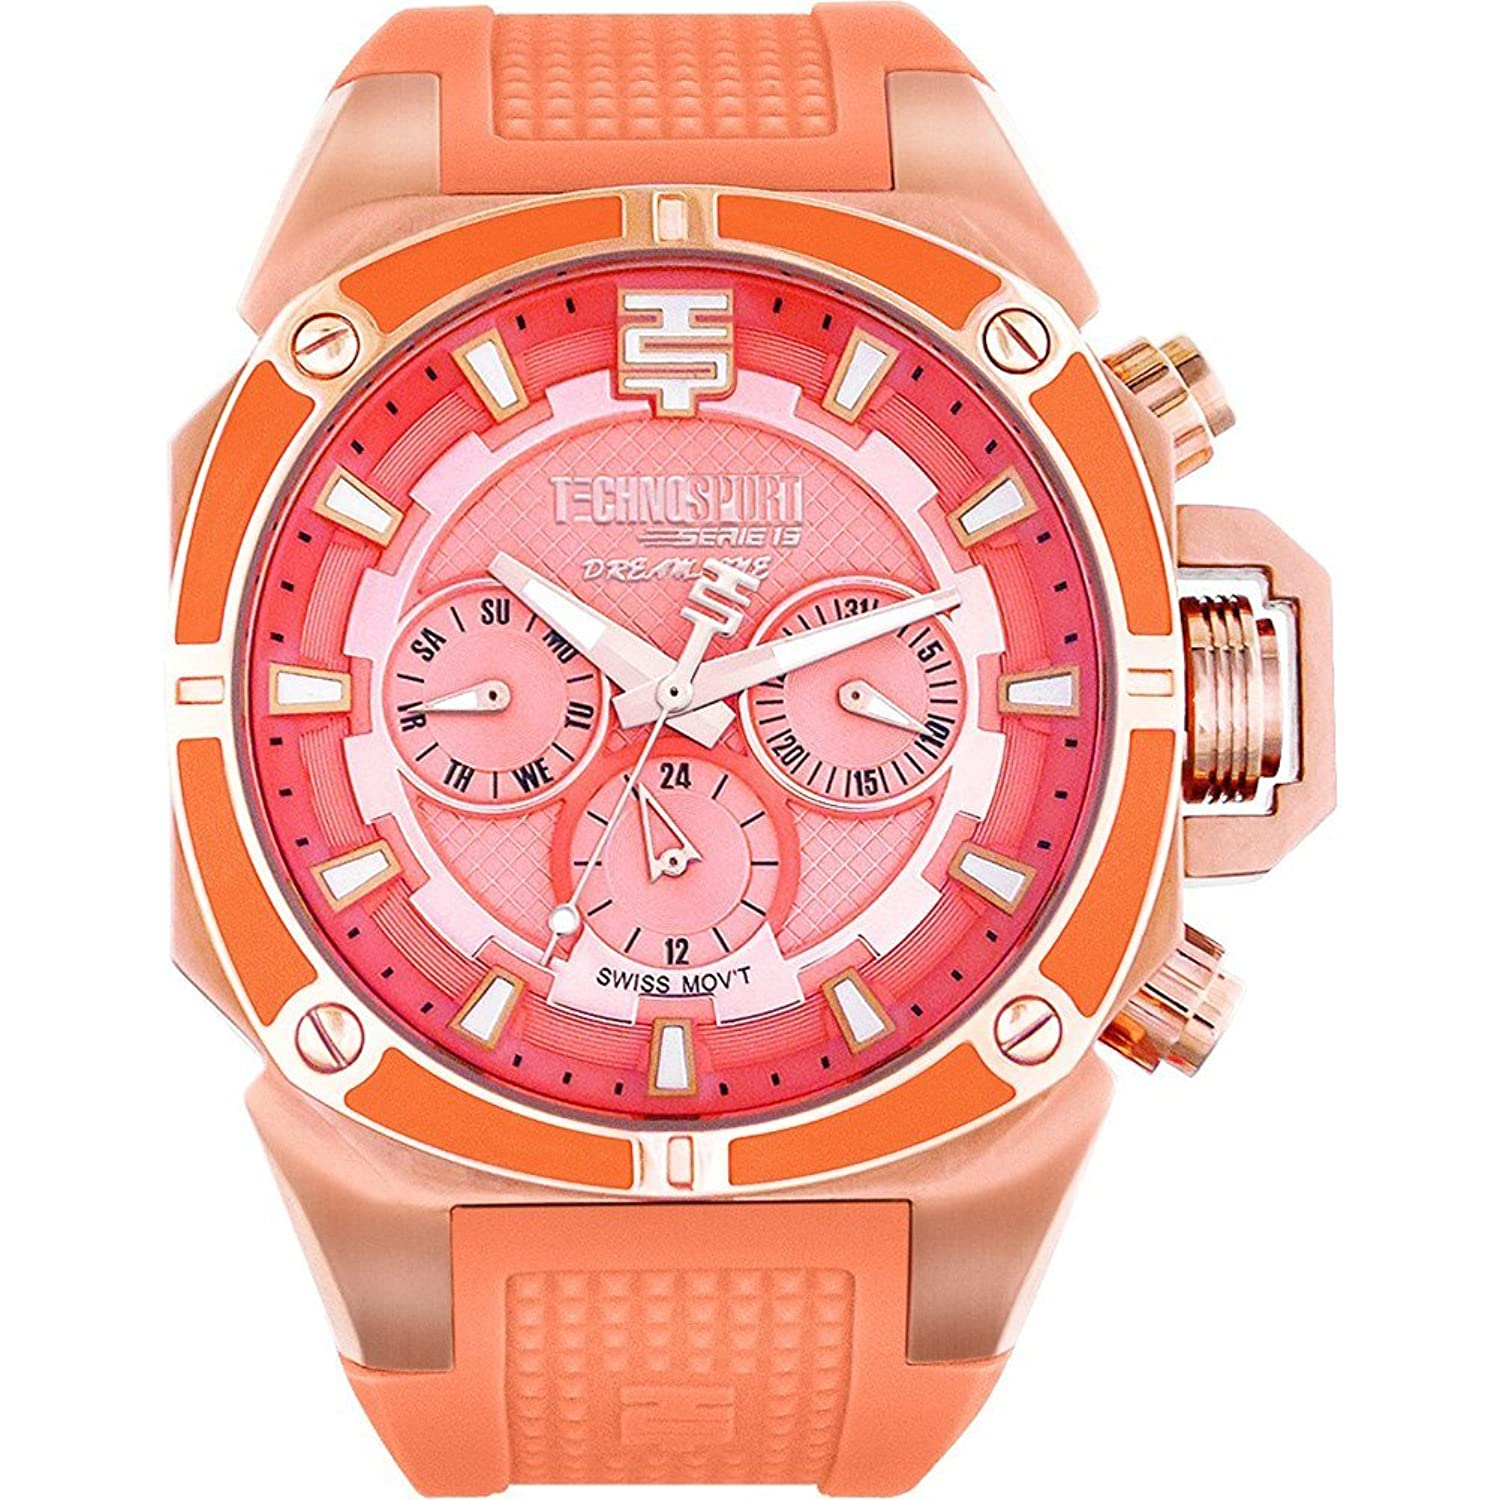 TechnoSport Damen Chrono Uhr - DREAMLINE rose gold